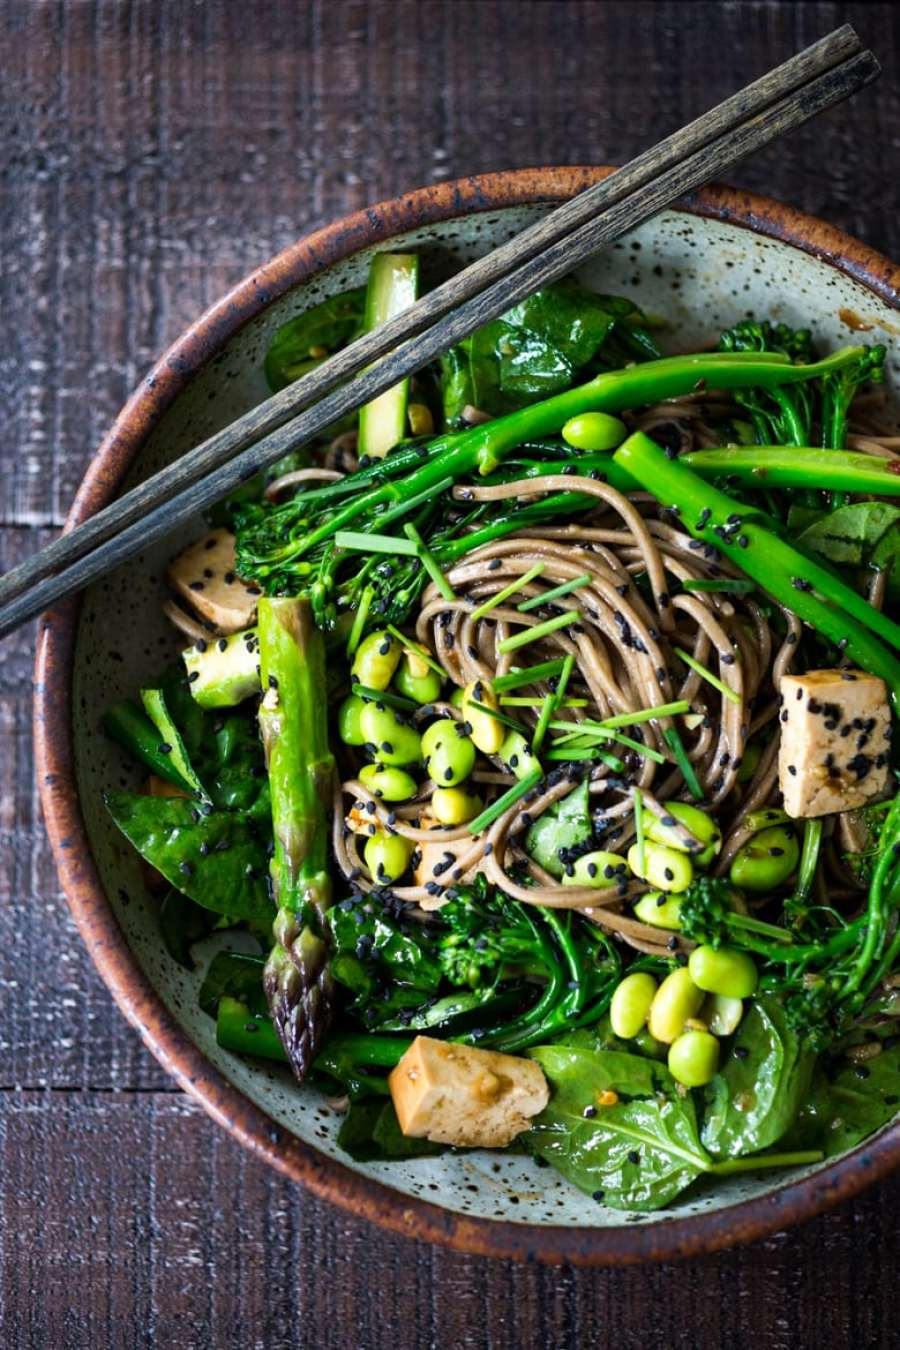 EAT CLEAN with these 20 simple Plant-Based Meals  JADE NOODLES loaded with seasonal veggies and a sesame dressing.   www.feastingathome.com